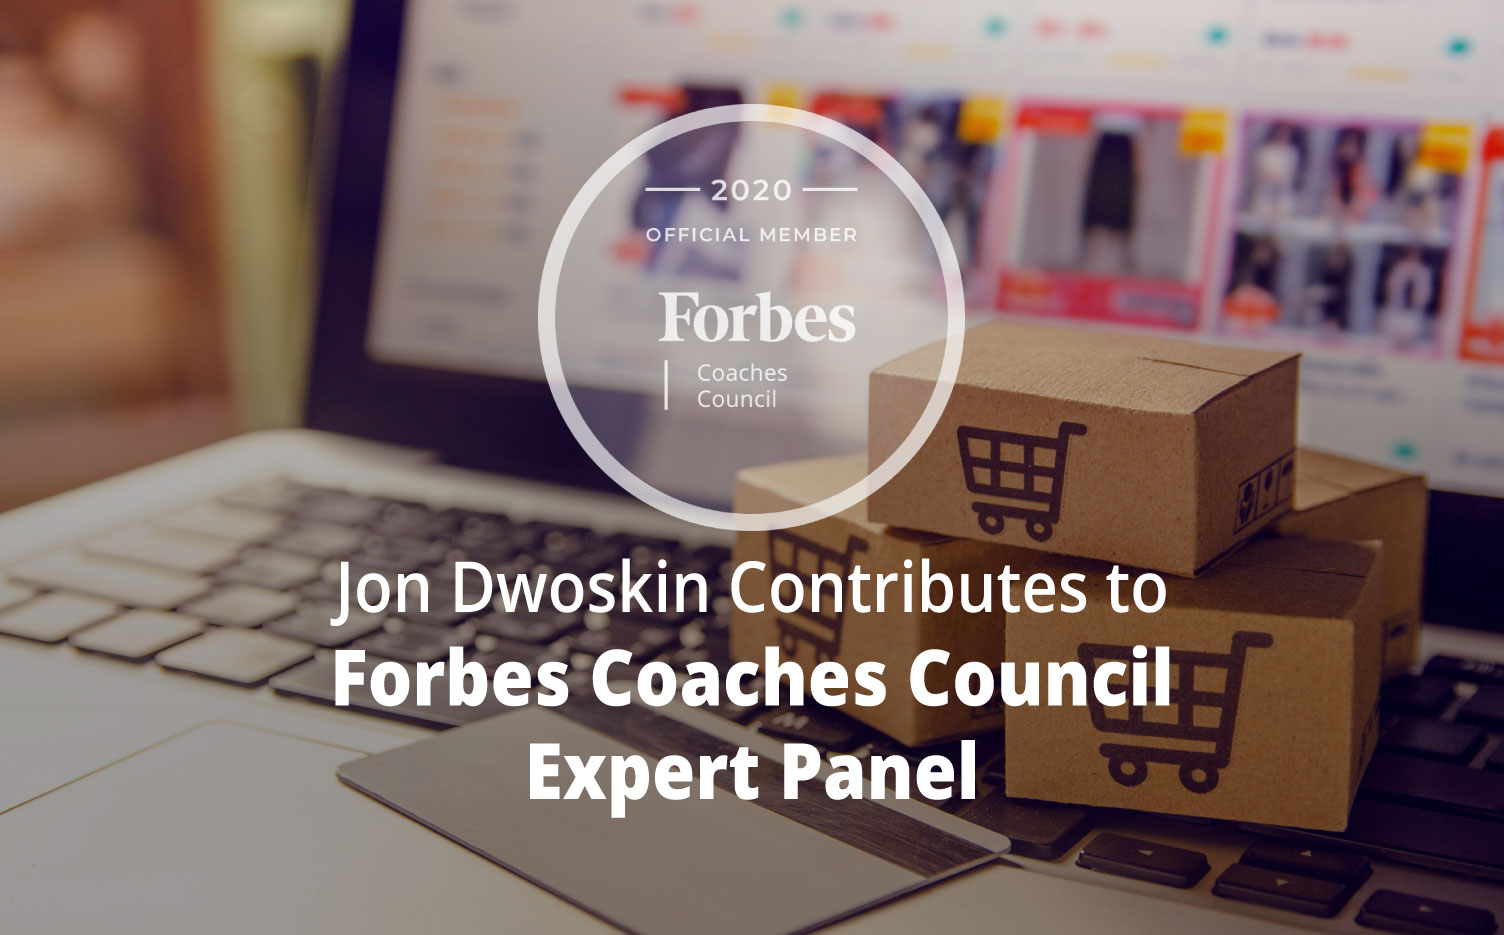 Jon Dwoskin Contributes to Forbes Coaches Council Expert Panel: 15 Trends That Are Expected To Drive Small Business In 2021